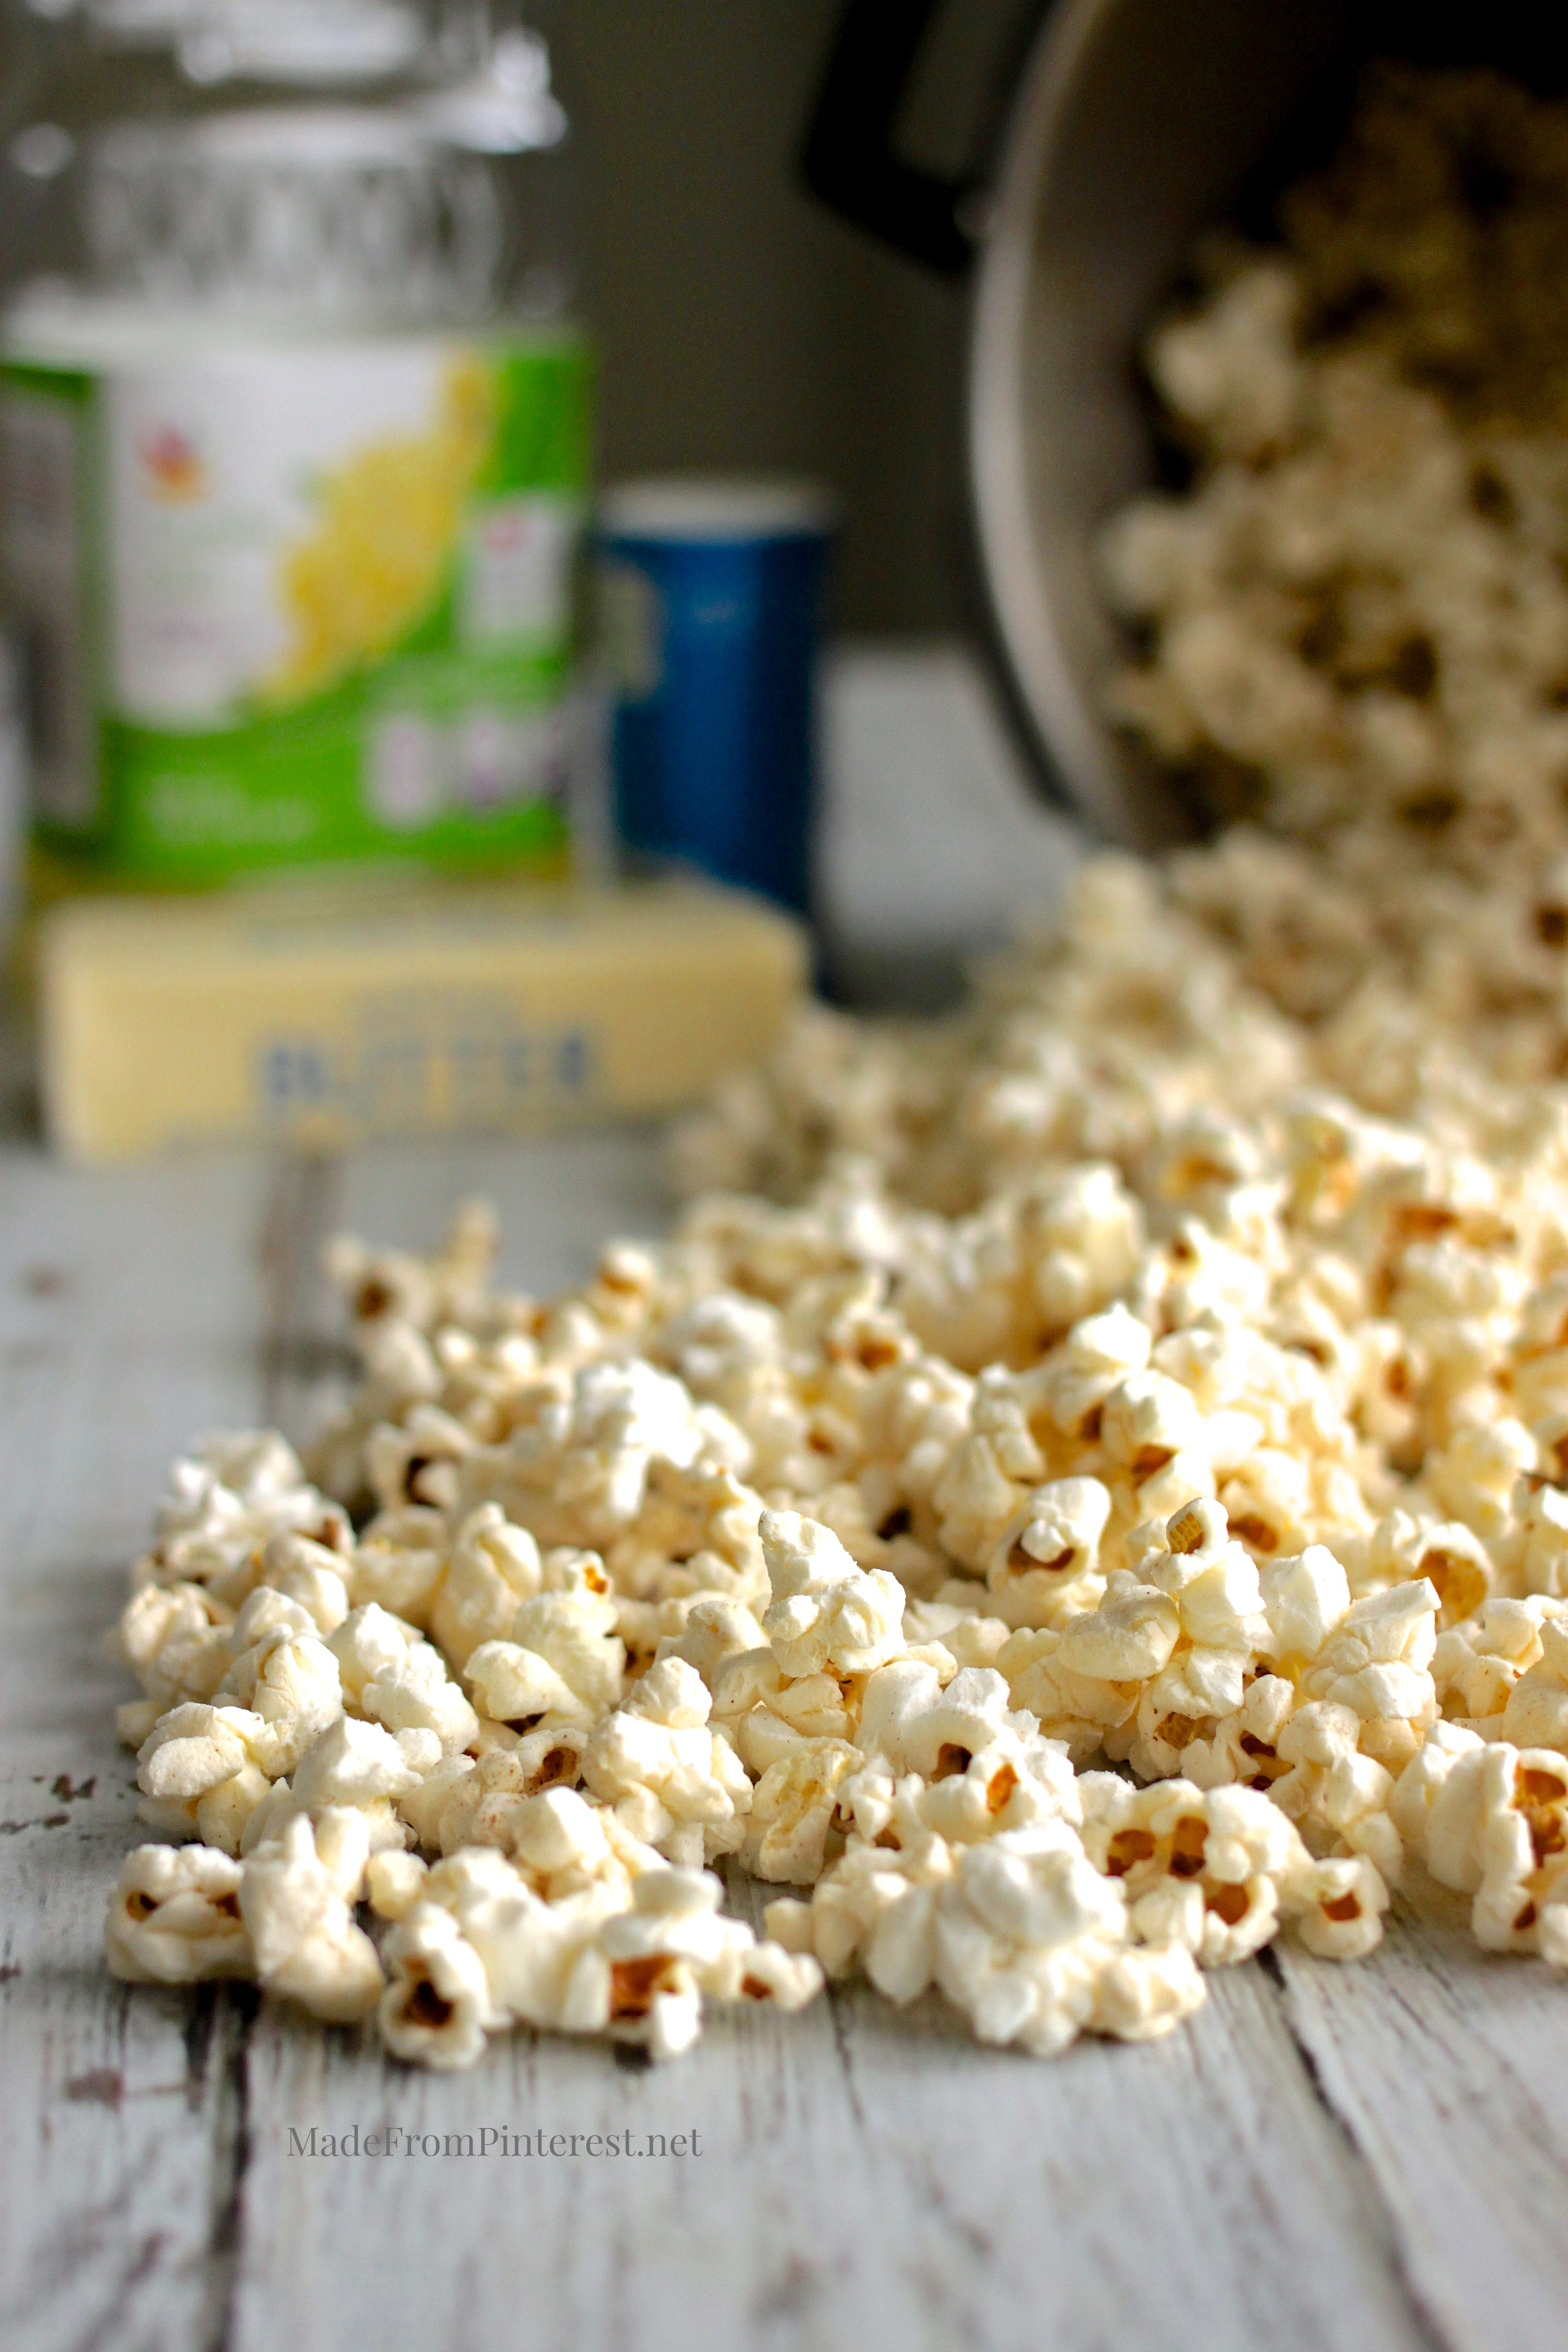 A secret ingredient no one is telling you about for perfect popcorn revealed. Make your popcorn 10 times more delicious with just one ingredient!